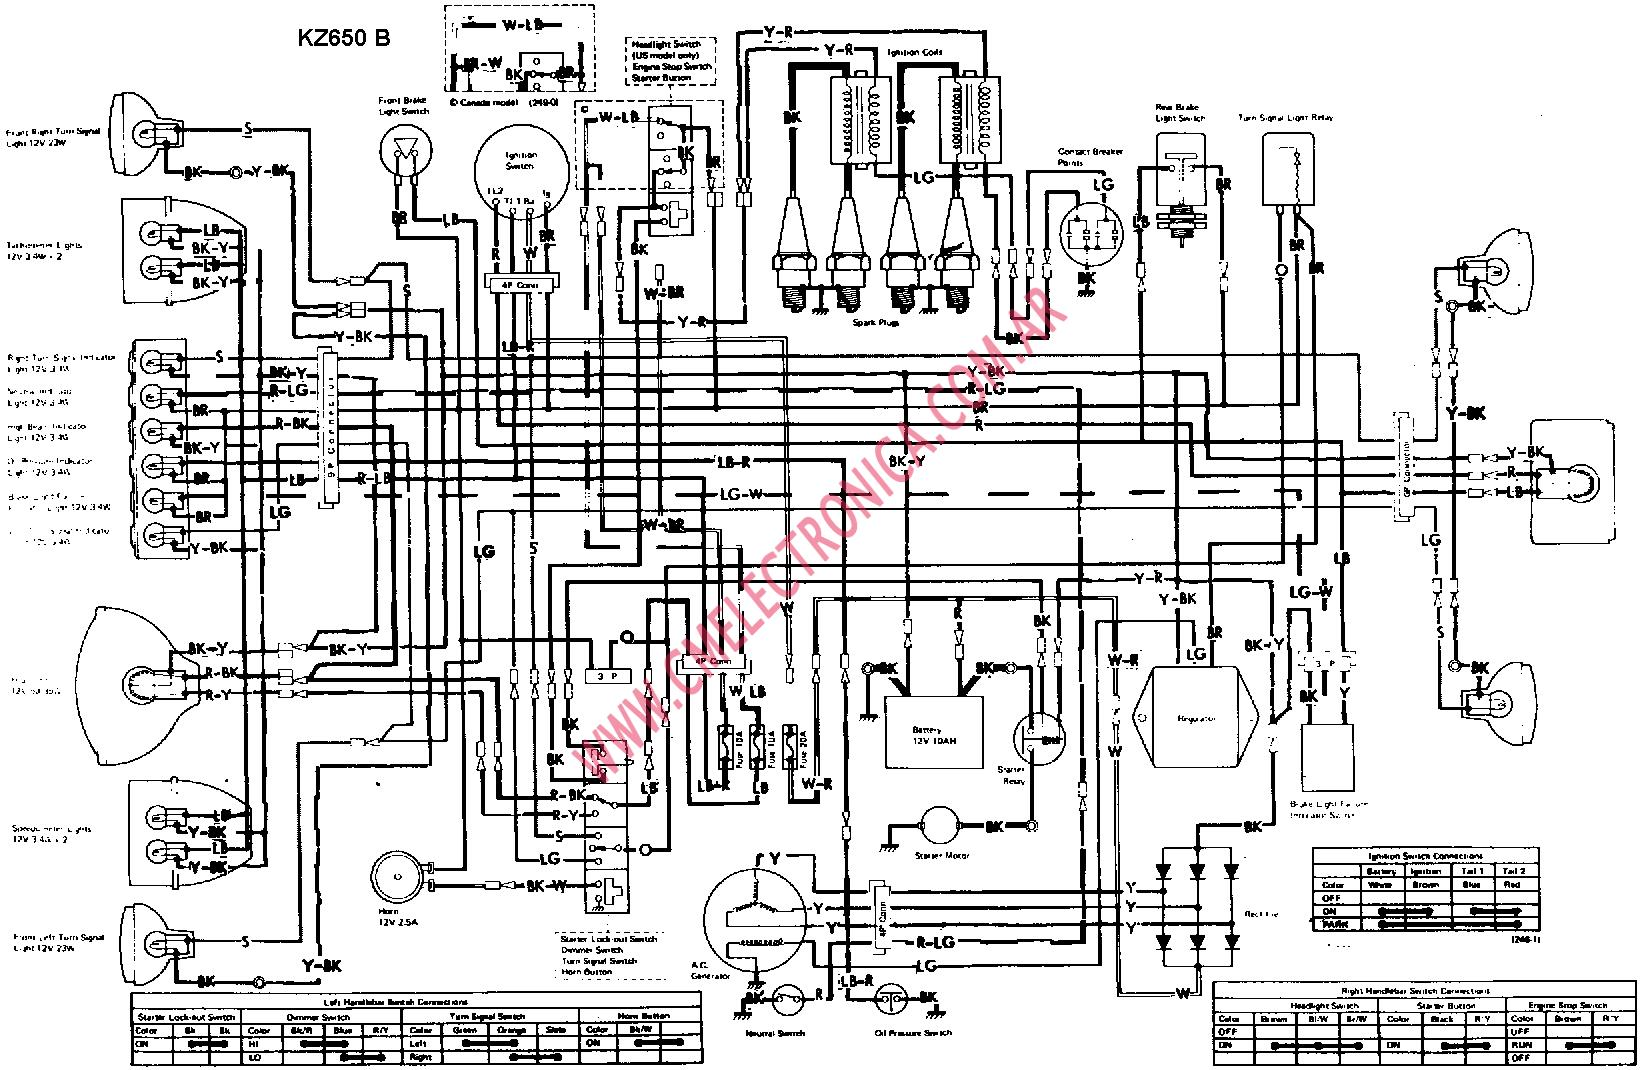 Kawasaki W 650 Wiring Diagram All Kind Of Diagrams Mule Free Kvf 300 Get Image About Carburetors